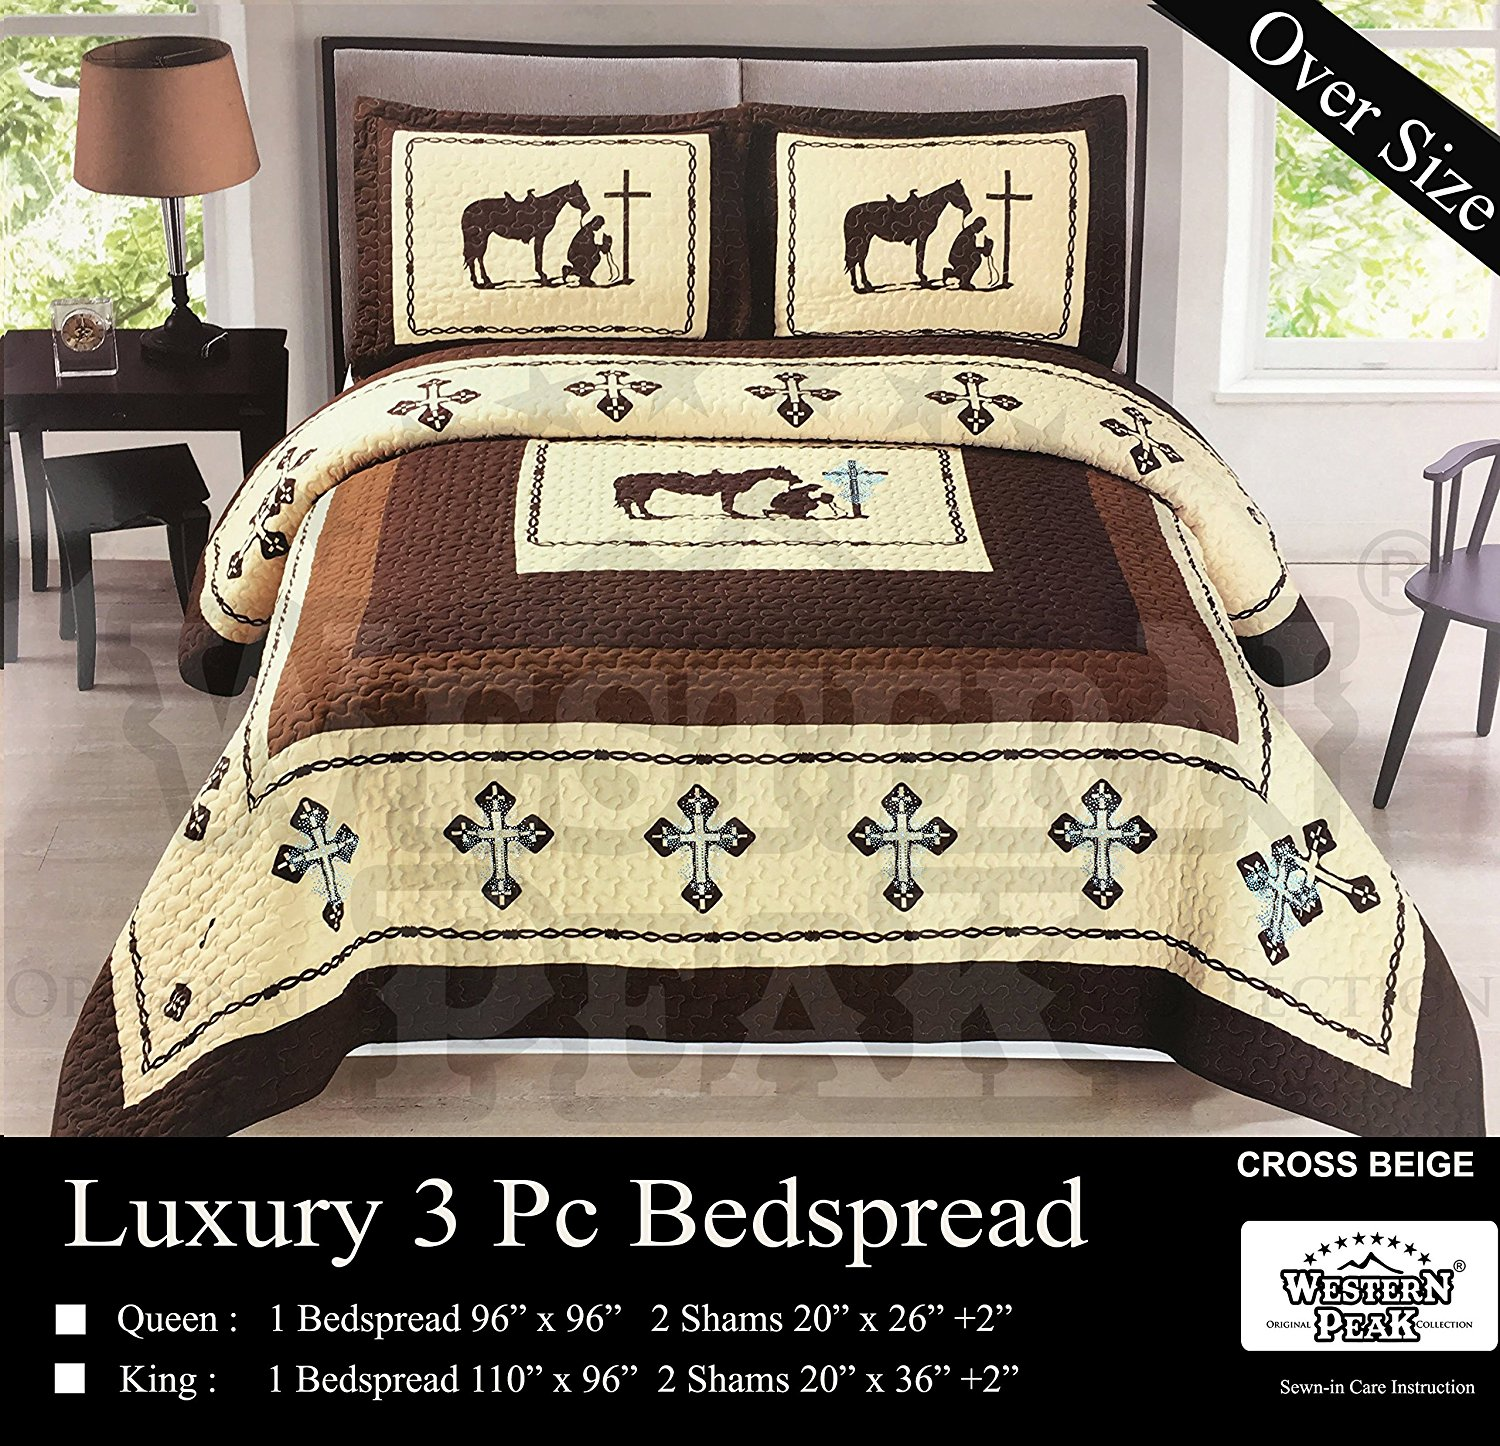 cabin beatrice rhinebeck pin set no nature longer king discontinued southwest comforter rustic bear bedding available cabins piece comforters